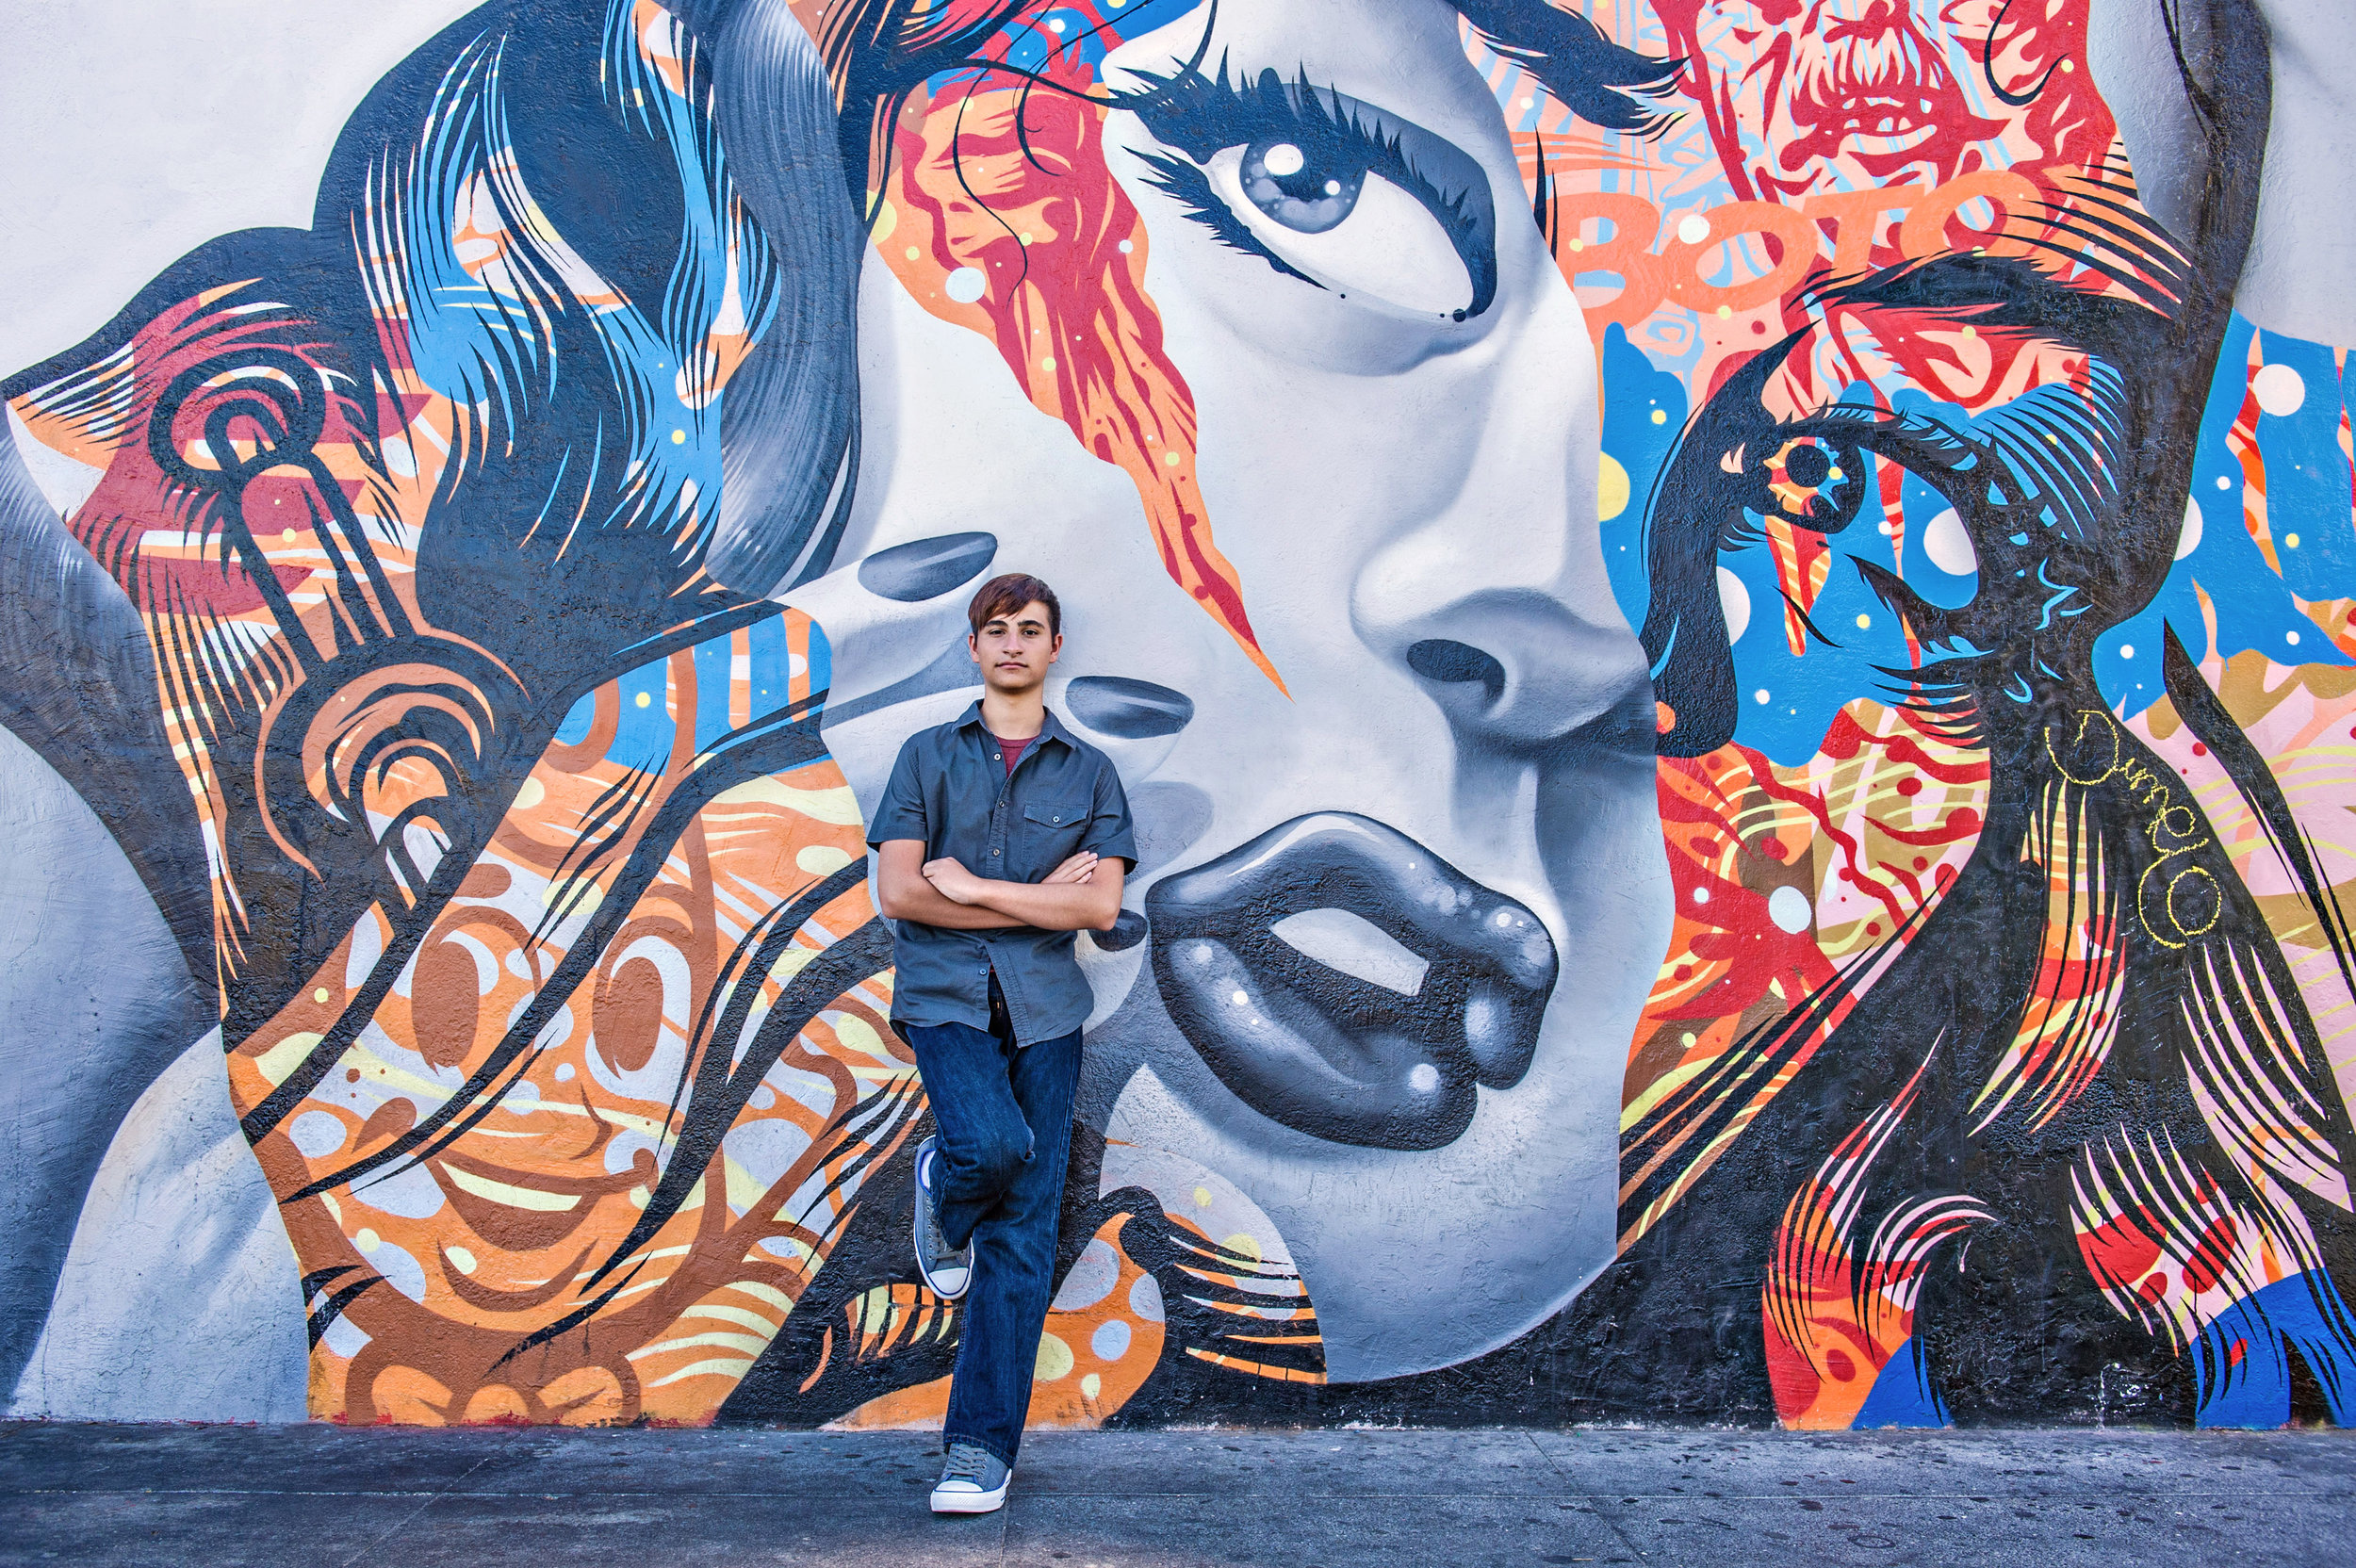 Young man leaning against a wall with an artist's depiction of a woman